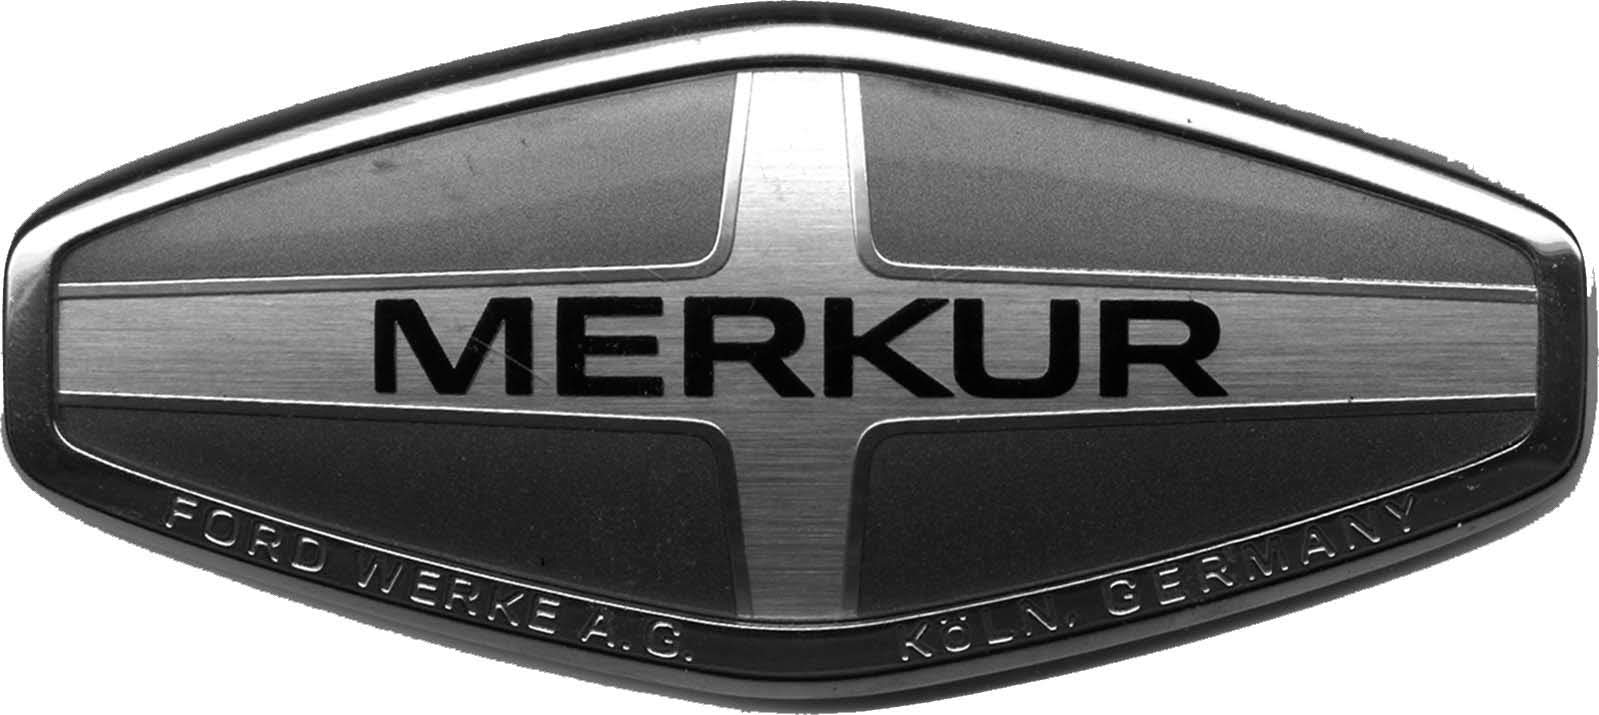 Ford S Merkur Brand Failed But Don T Blame The Cars Hagerty Media